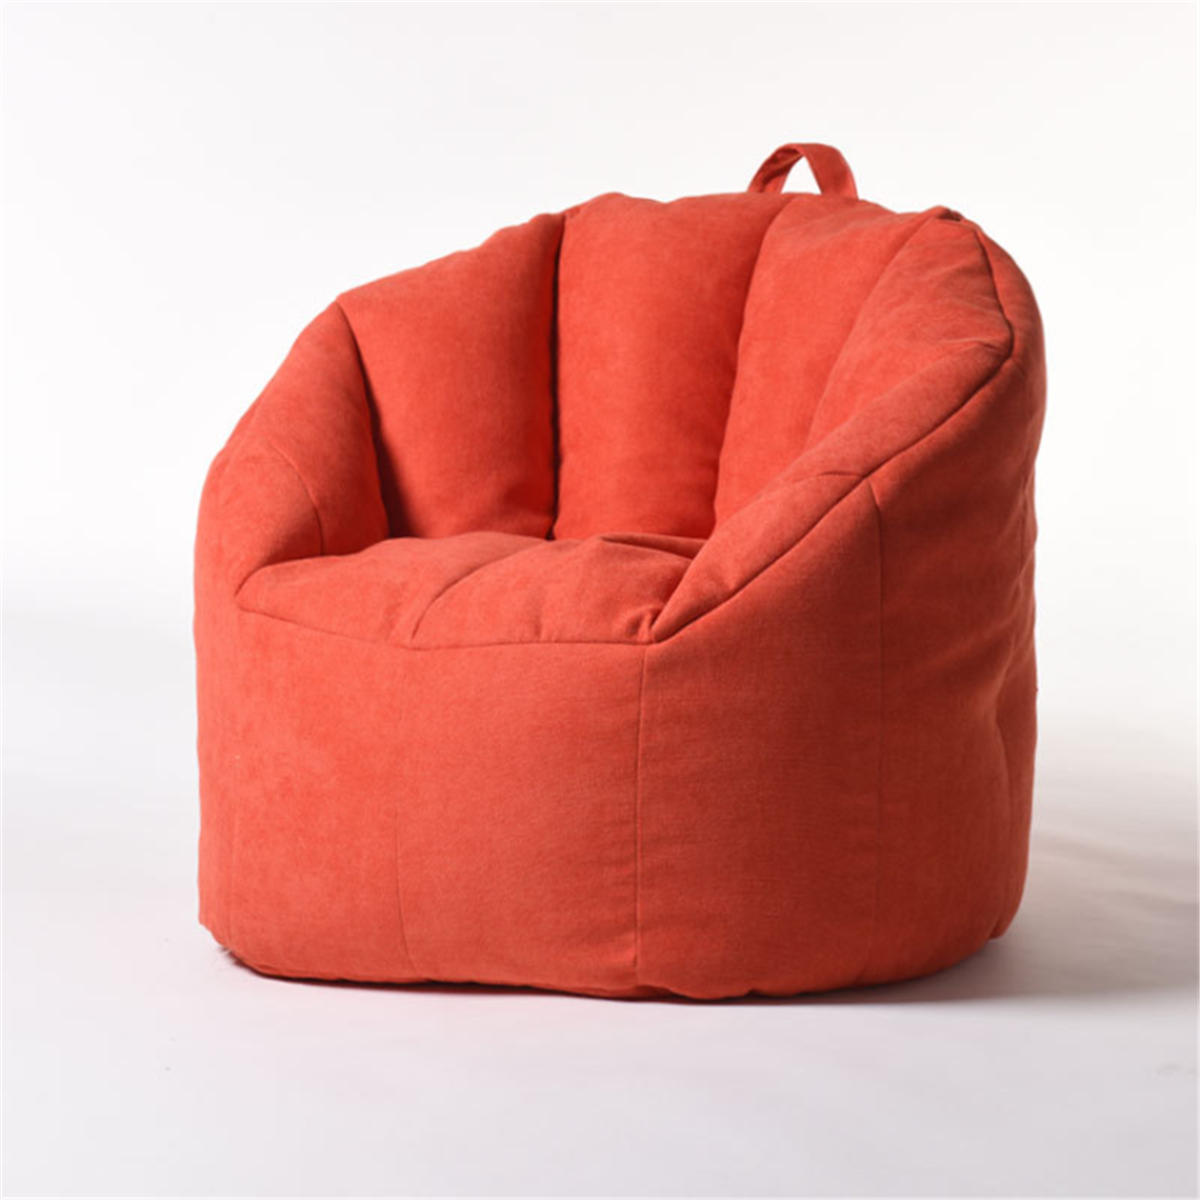 Prime Big Joe Milano Bean Bag Chair Multiple Colors Available Comfort For Kids Adult Covers Caraccident5 Cool Chair Designs And Ideas Caraccident5Info